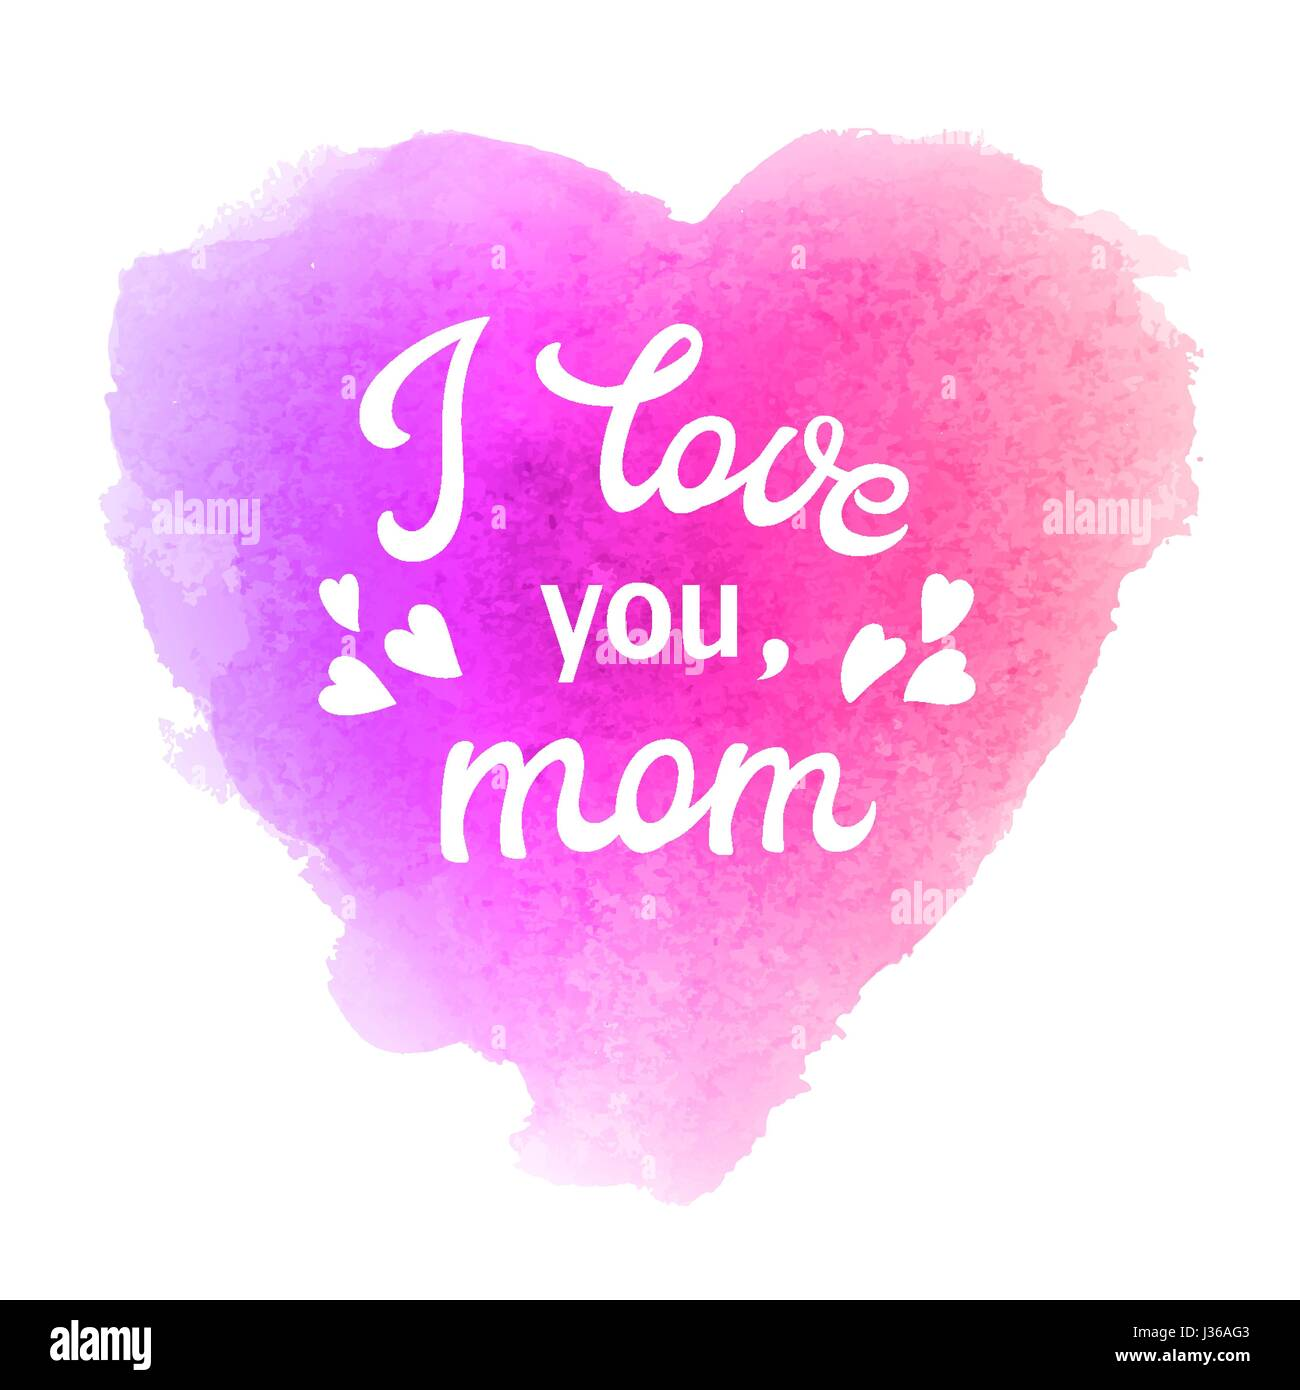 I love you mom greeting card with heart and hand lettering text on i love you mom greeting card with heart and hand lettering text on abstract pink and violet watercolor heart shaped soft background m4hsunfo